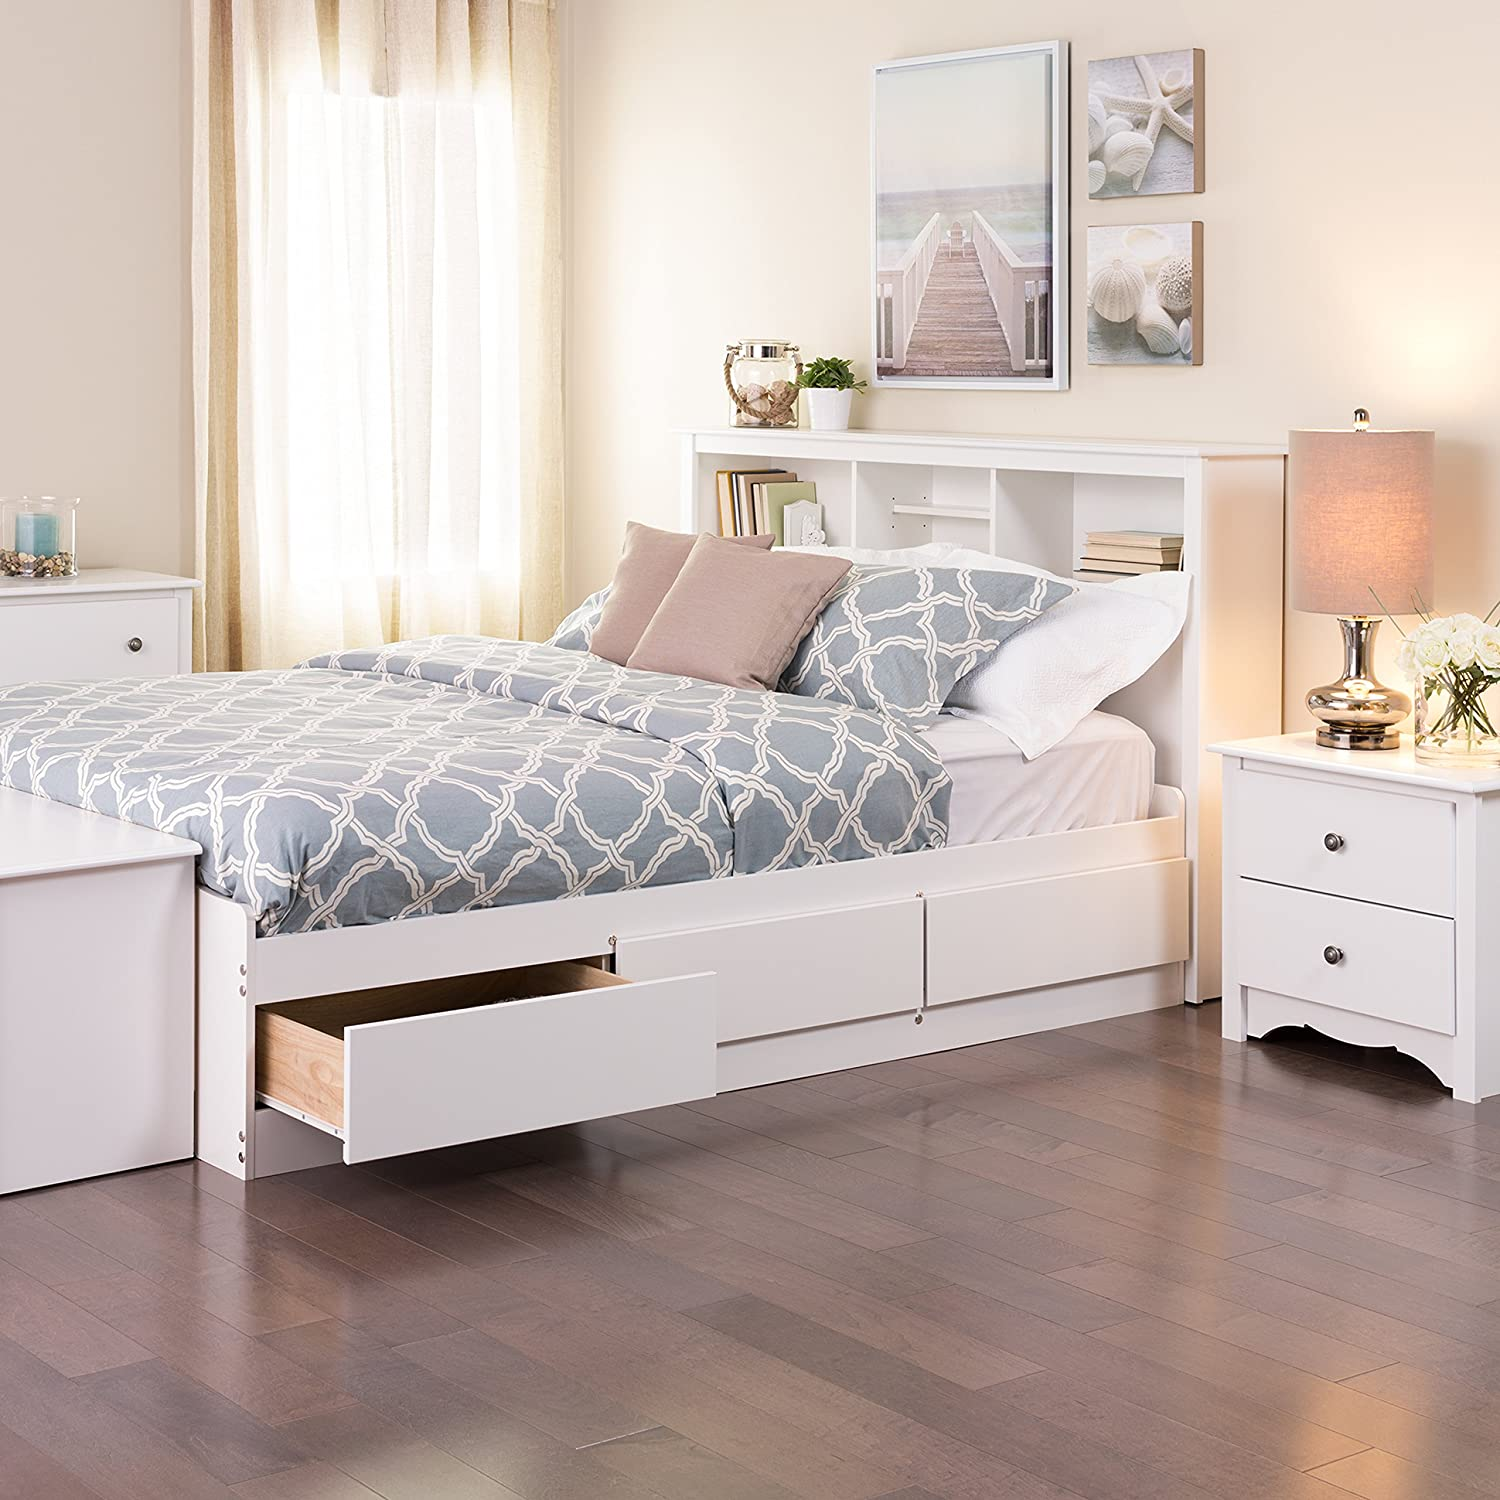 amazoncom prepac full mates platform storage bed with 6 drawers white kitchen dining - White Full Bed Frame